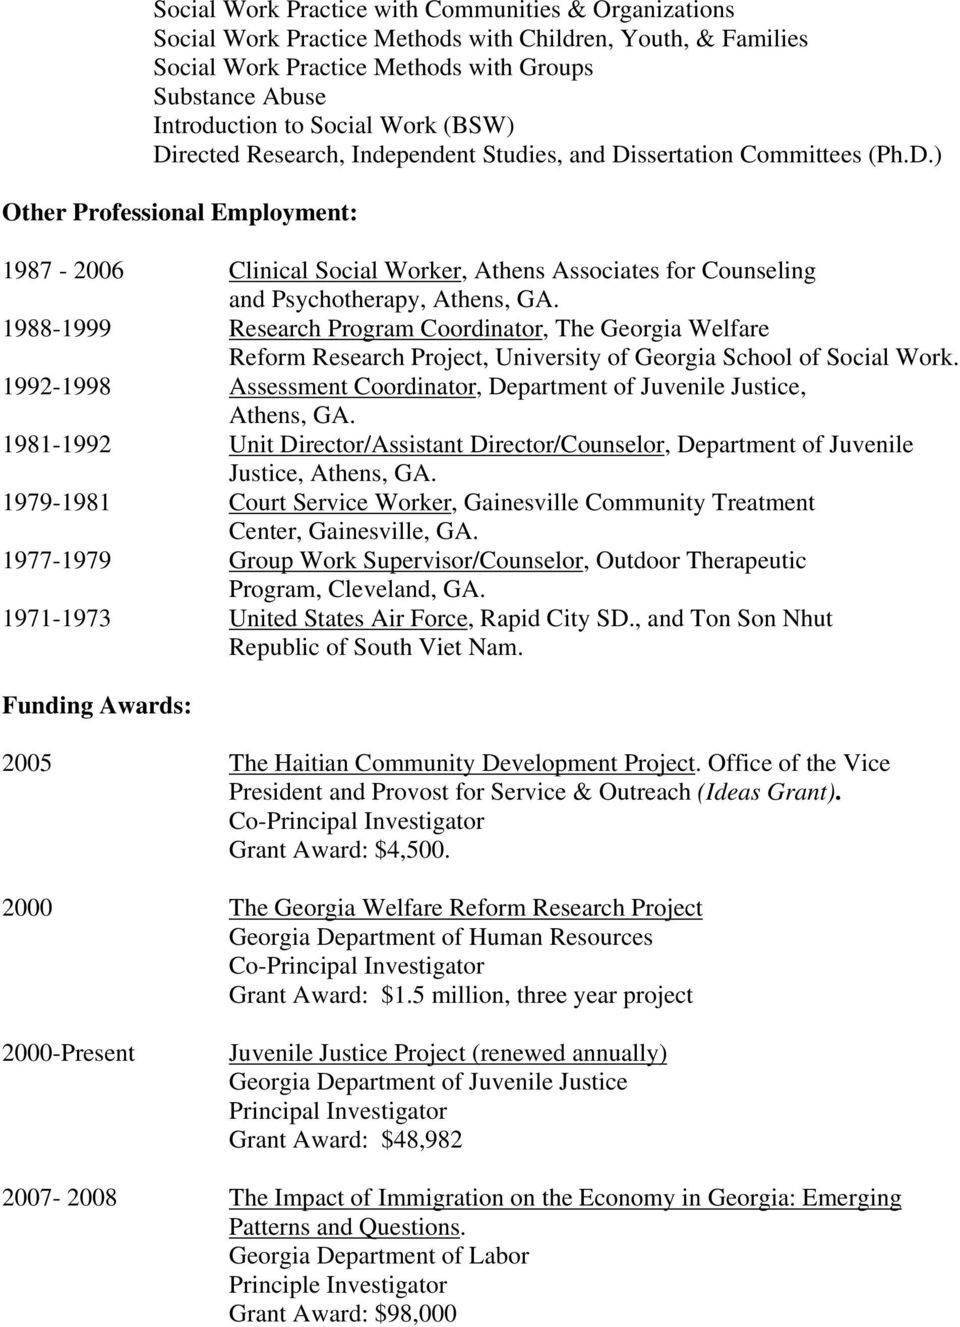 1988-1999 Research Program Coordinator, The Georgia Welfare Reform Research Project, University of Georgia School of Social Work.